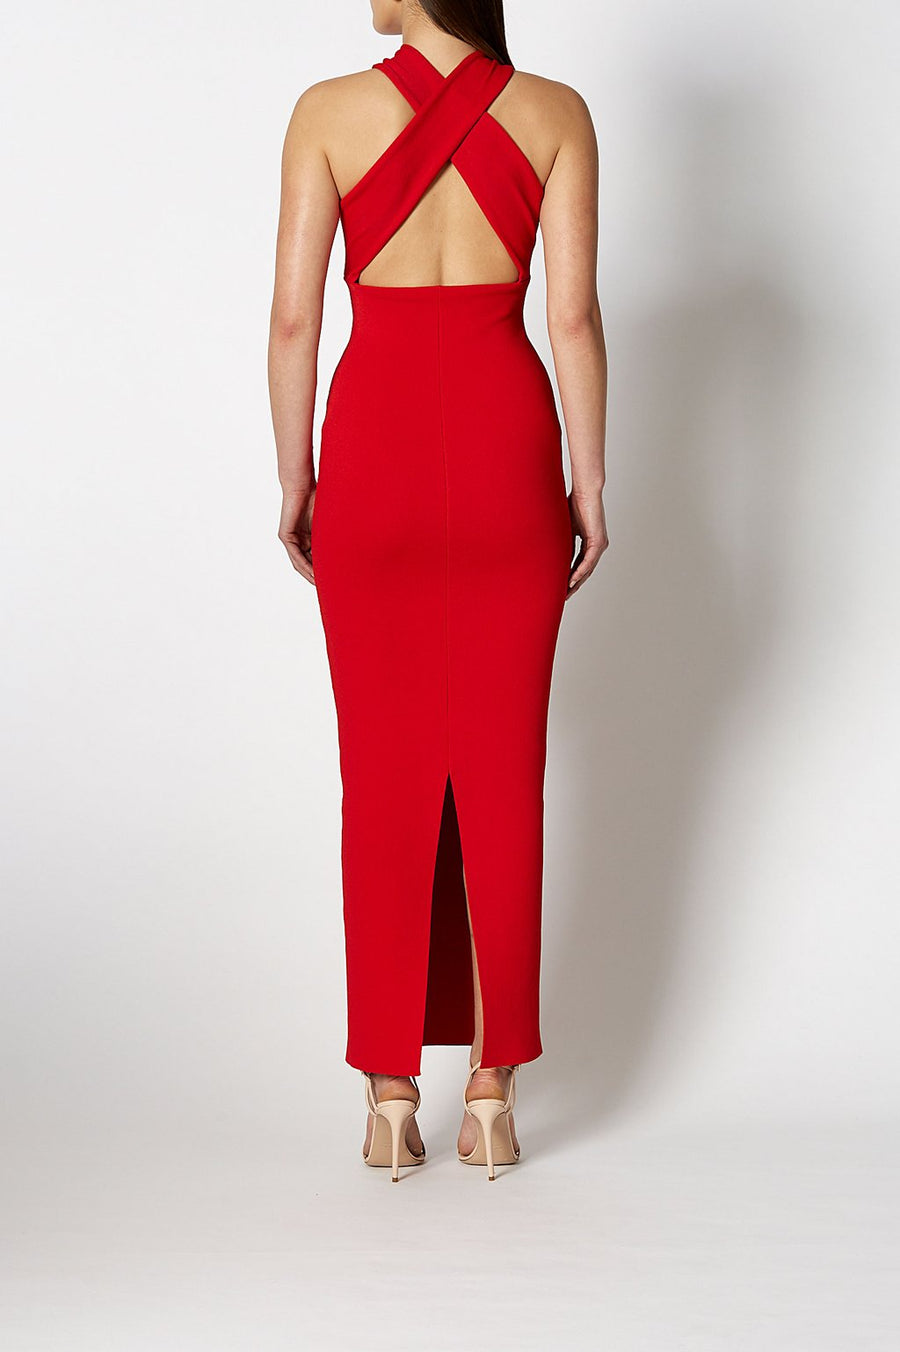 Crepe Knit Gown, Full Length, Crossover Halter, Red Color